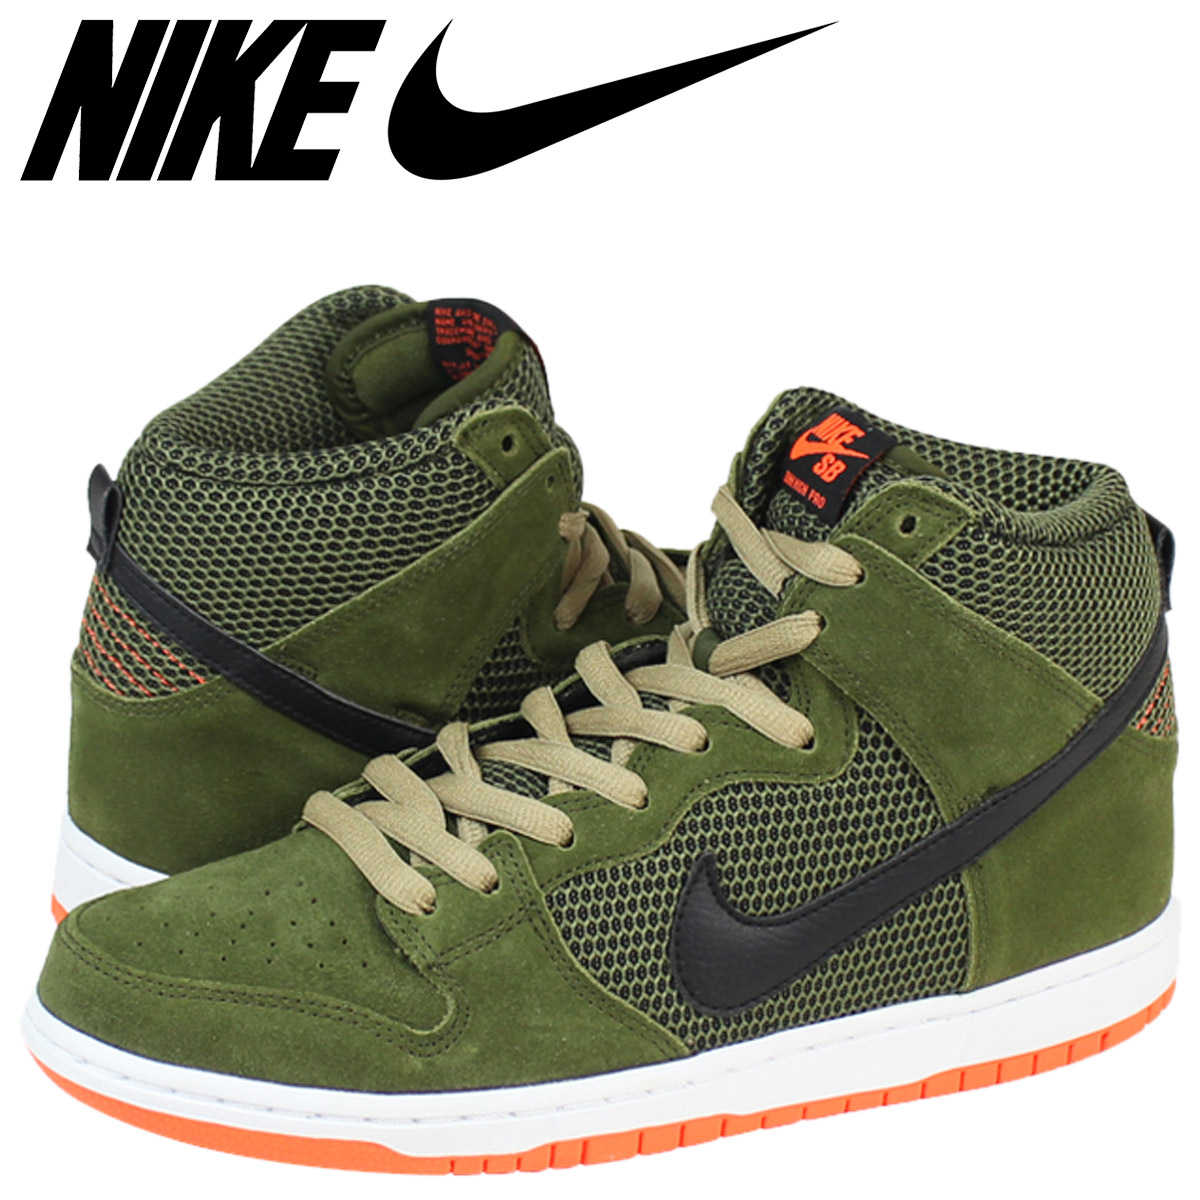 the best attitude ce1a5 5ebb2 Nike NIKE dunk sneakers DUNK HI PRO SB Dunk high Pro SB limited 305050-308  suede men's